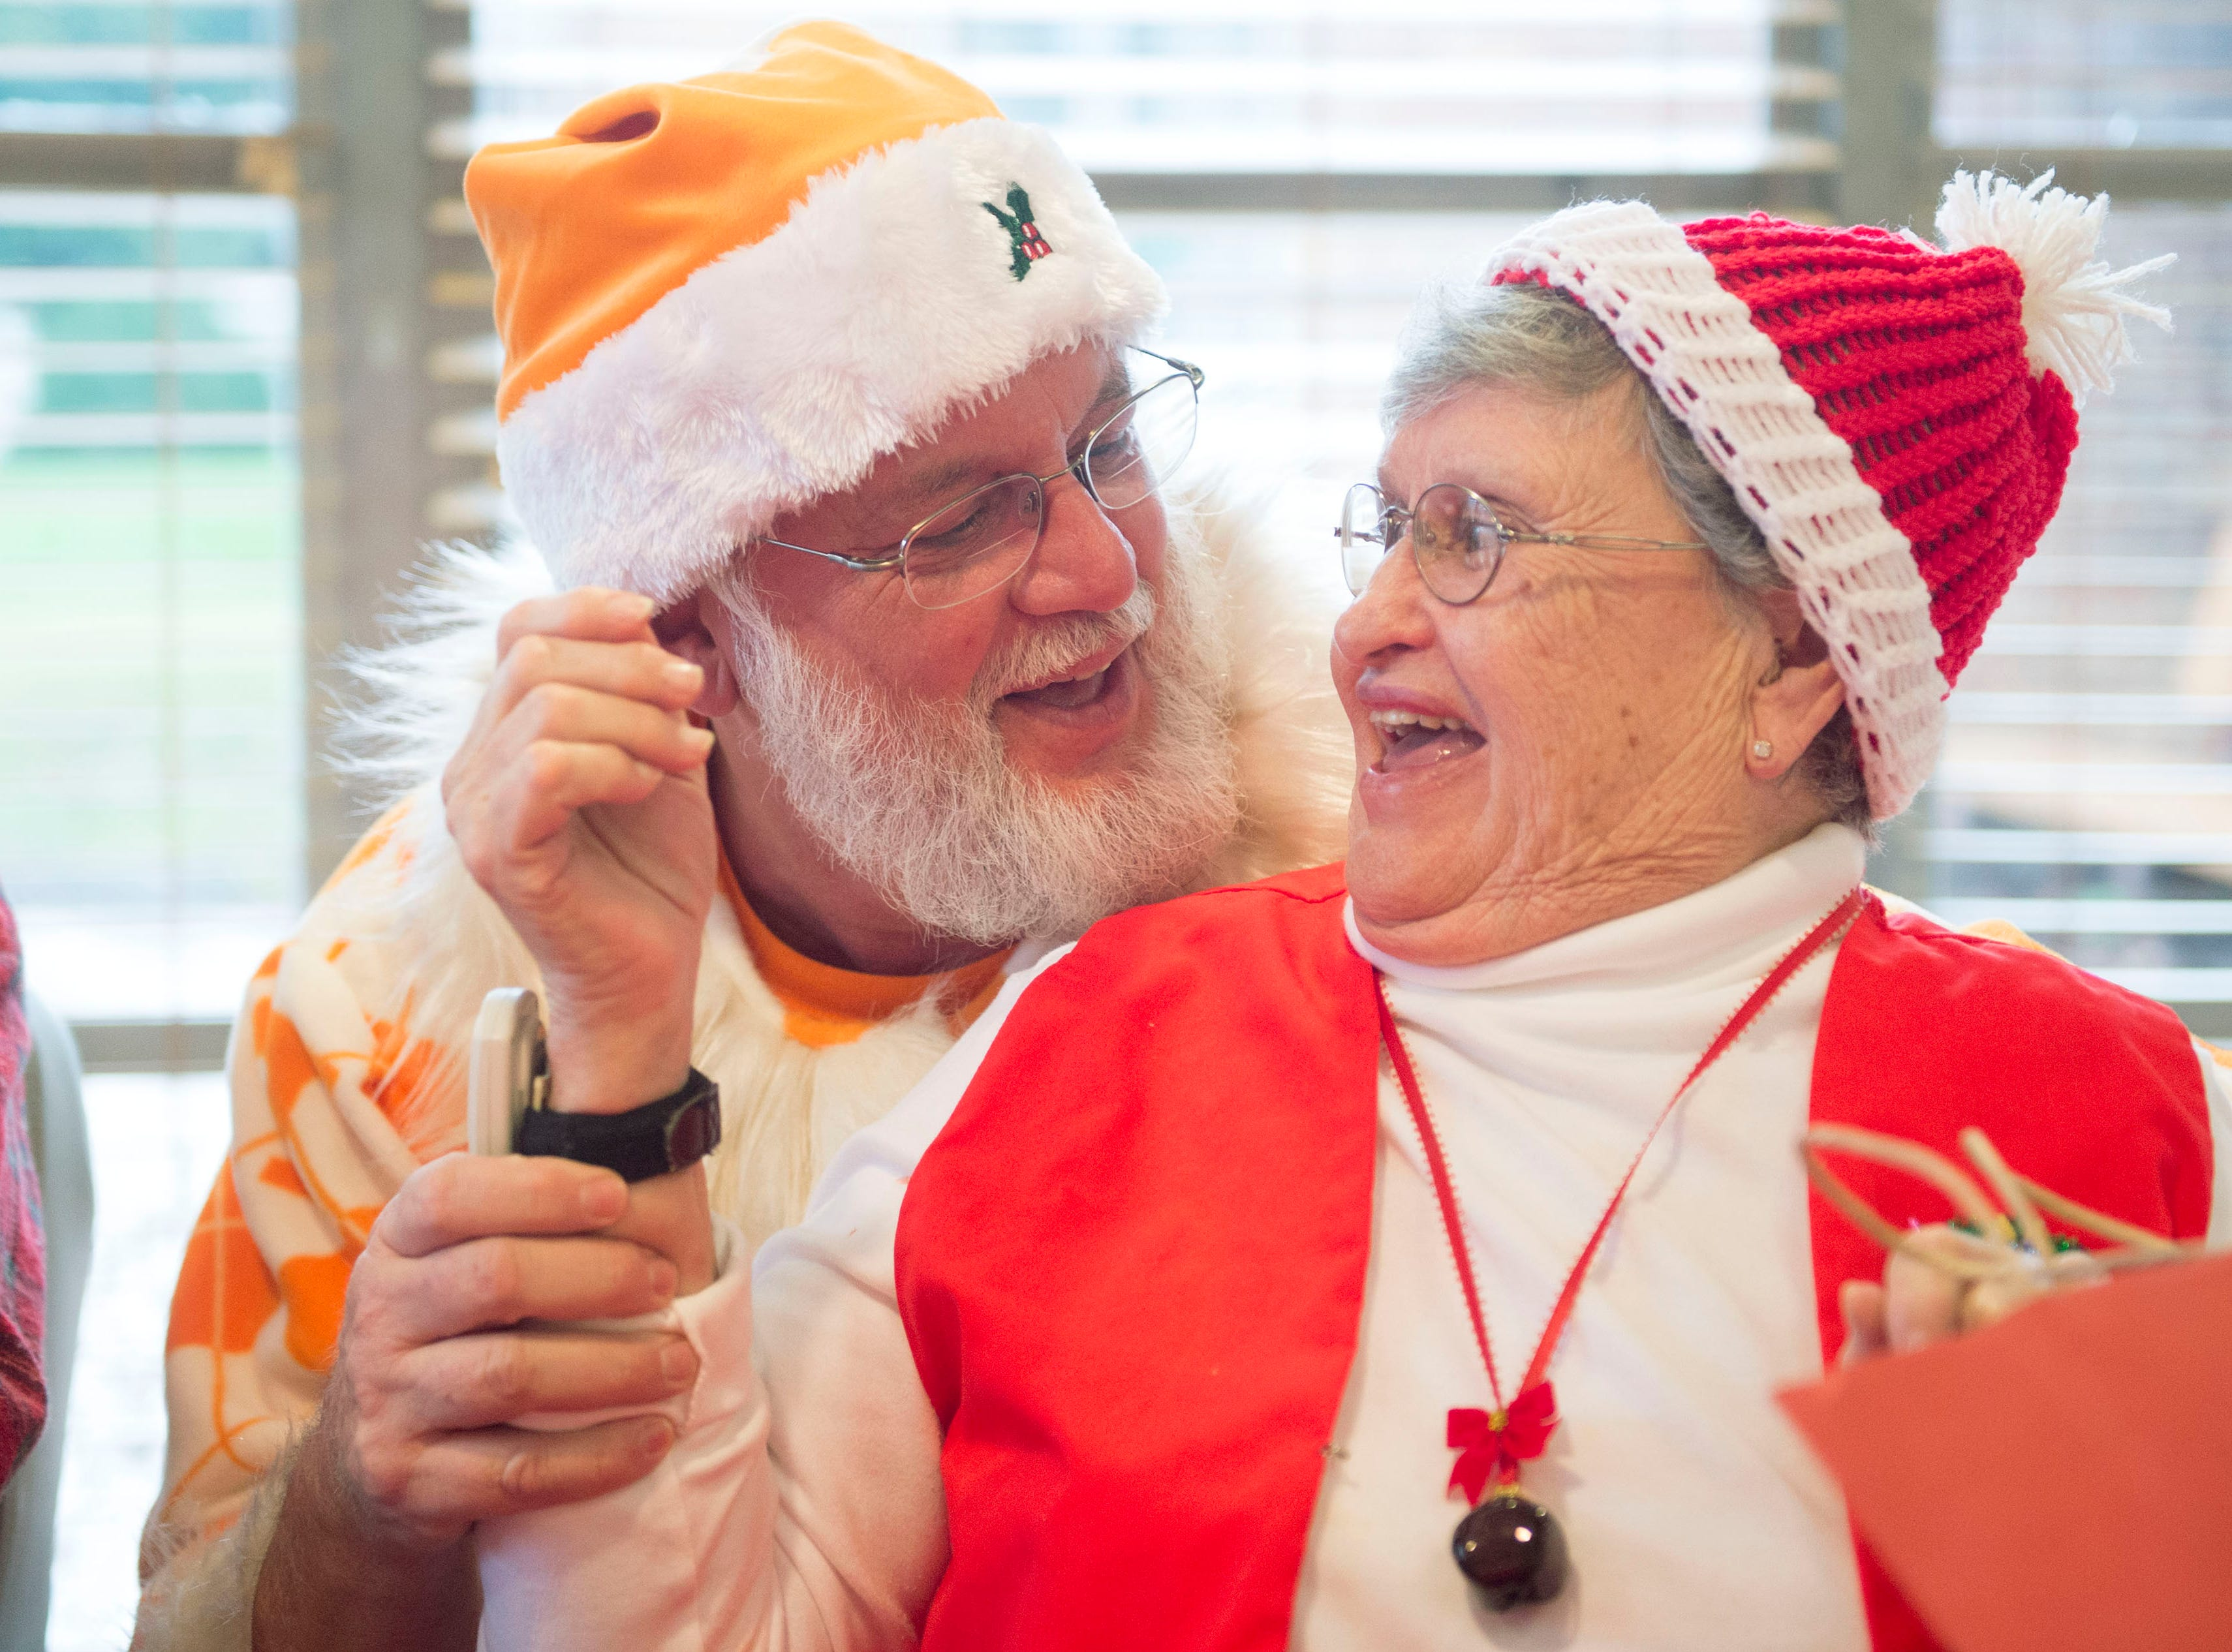 Bruce Farrant greets Elizabeth Franklin during a holiday party at the Asbury Place assisted living facility on Wednesday, December 23, 2015. Farrant wears an orange Tennessee Volunteer Santa outfit that was made by Franklin for the event.